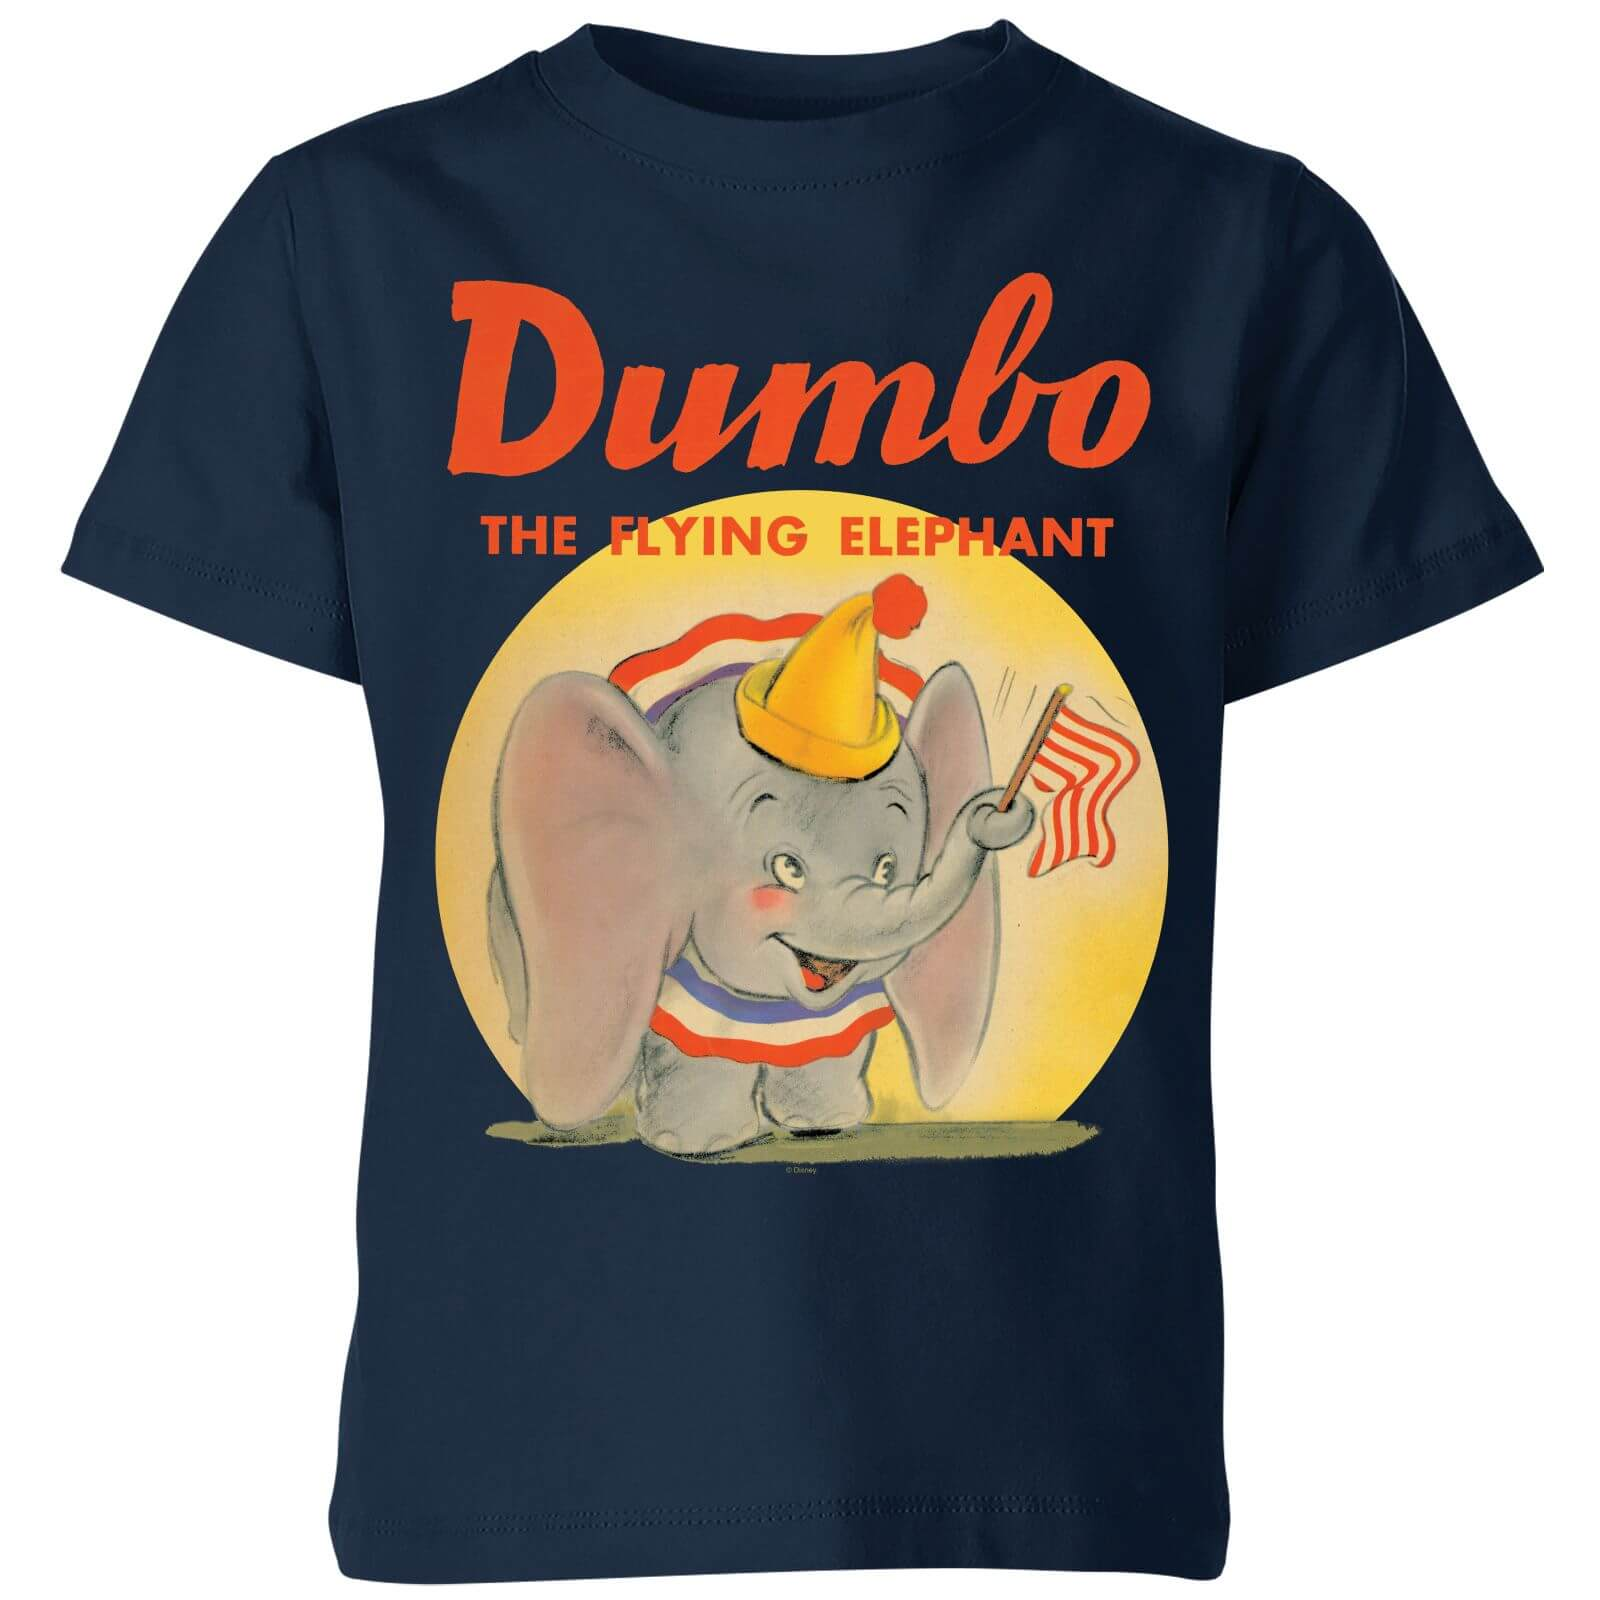 e5f69e34653a3 T-Shirt Enfant Flying Elephant Dumbo Disney - Bleu Marine Clothing ...